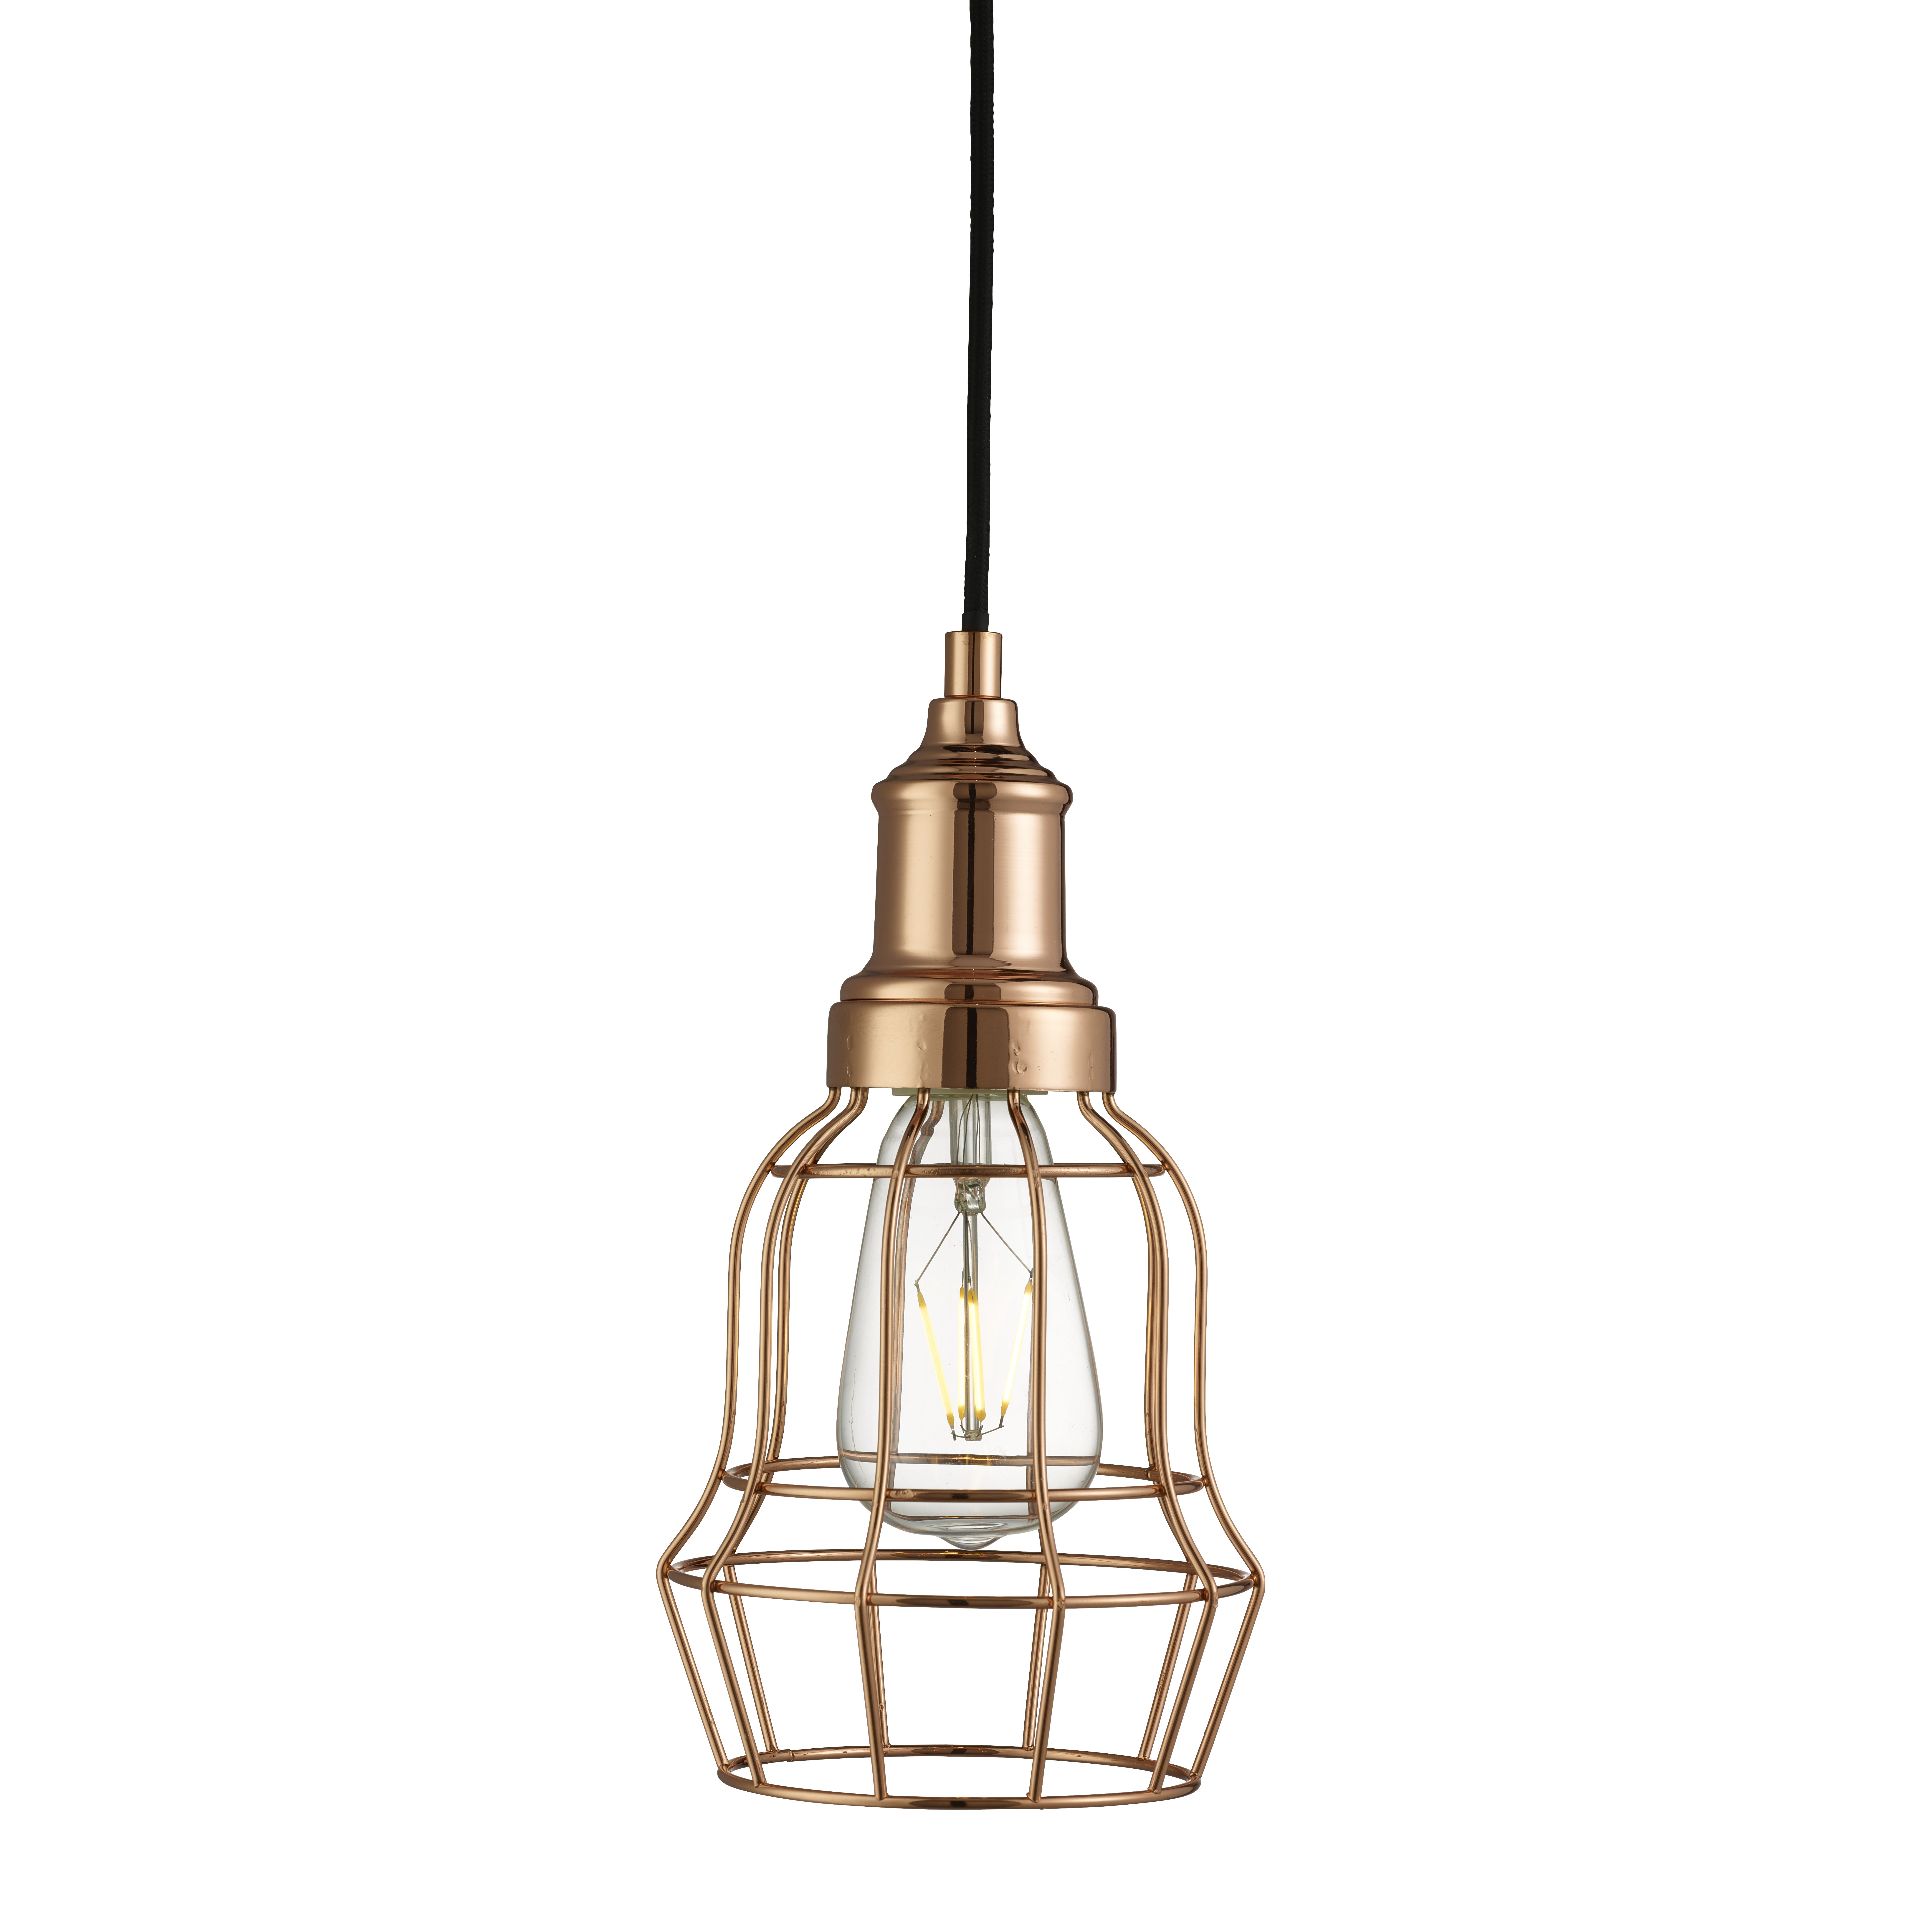 Copper bell cage pendant light